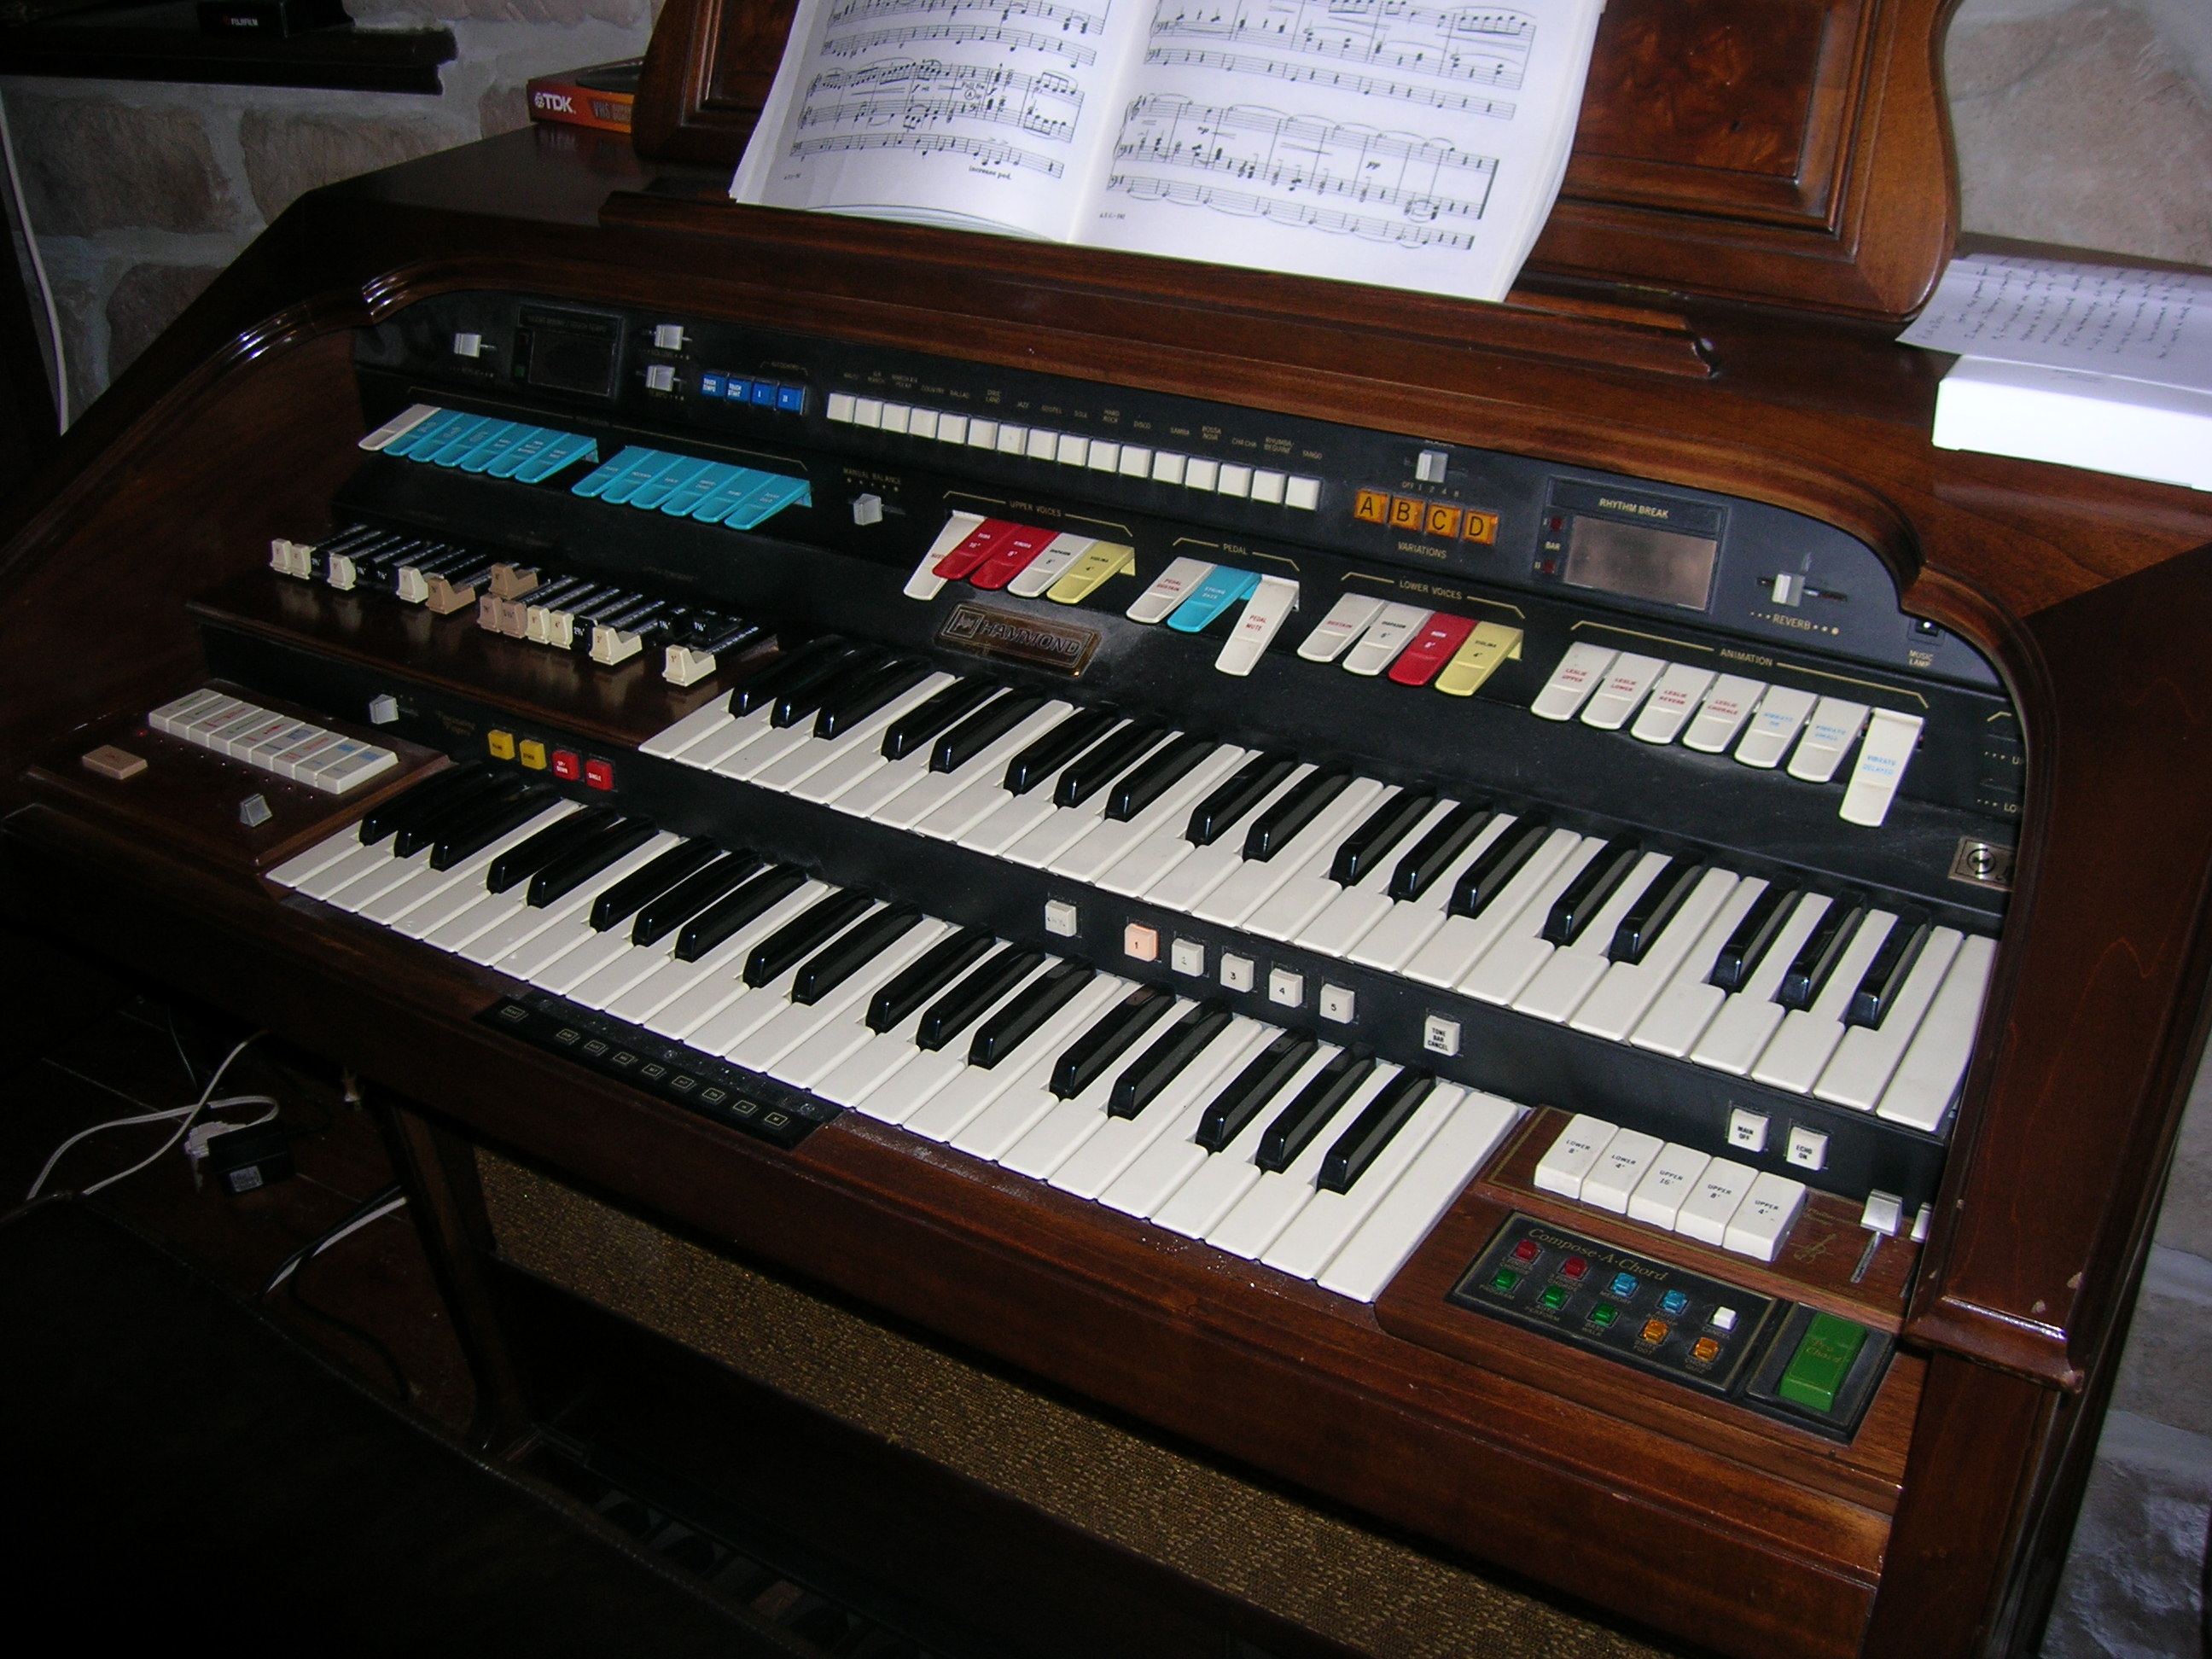 I have a Hammond organ model 246172 circa 1983 it is in good